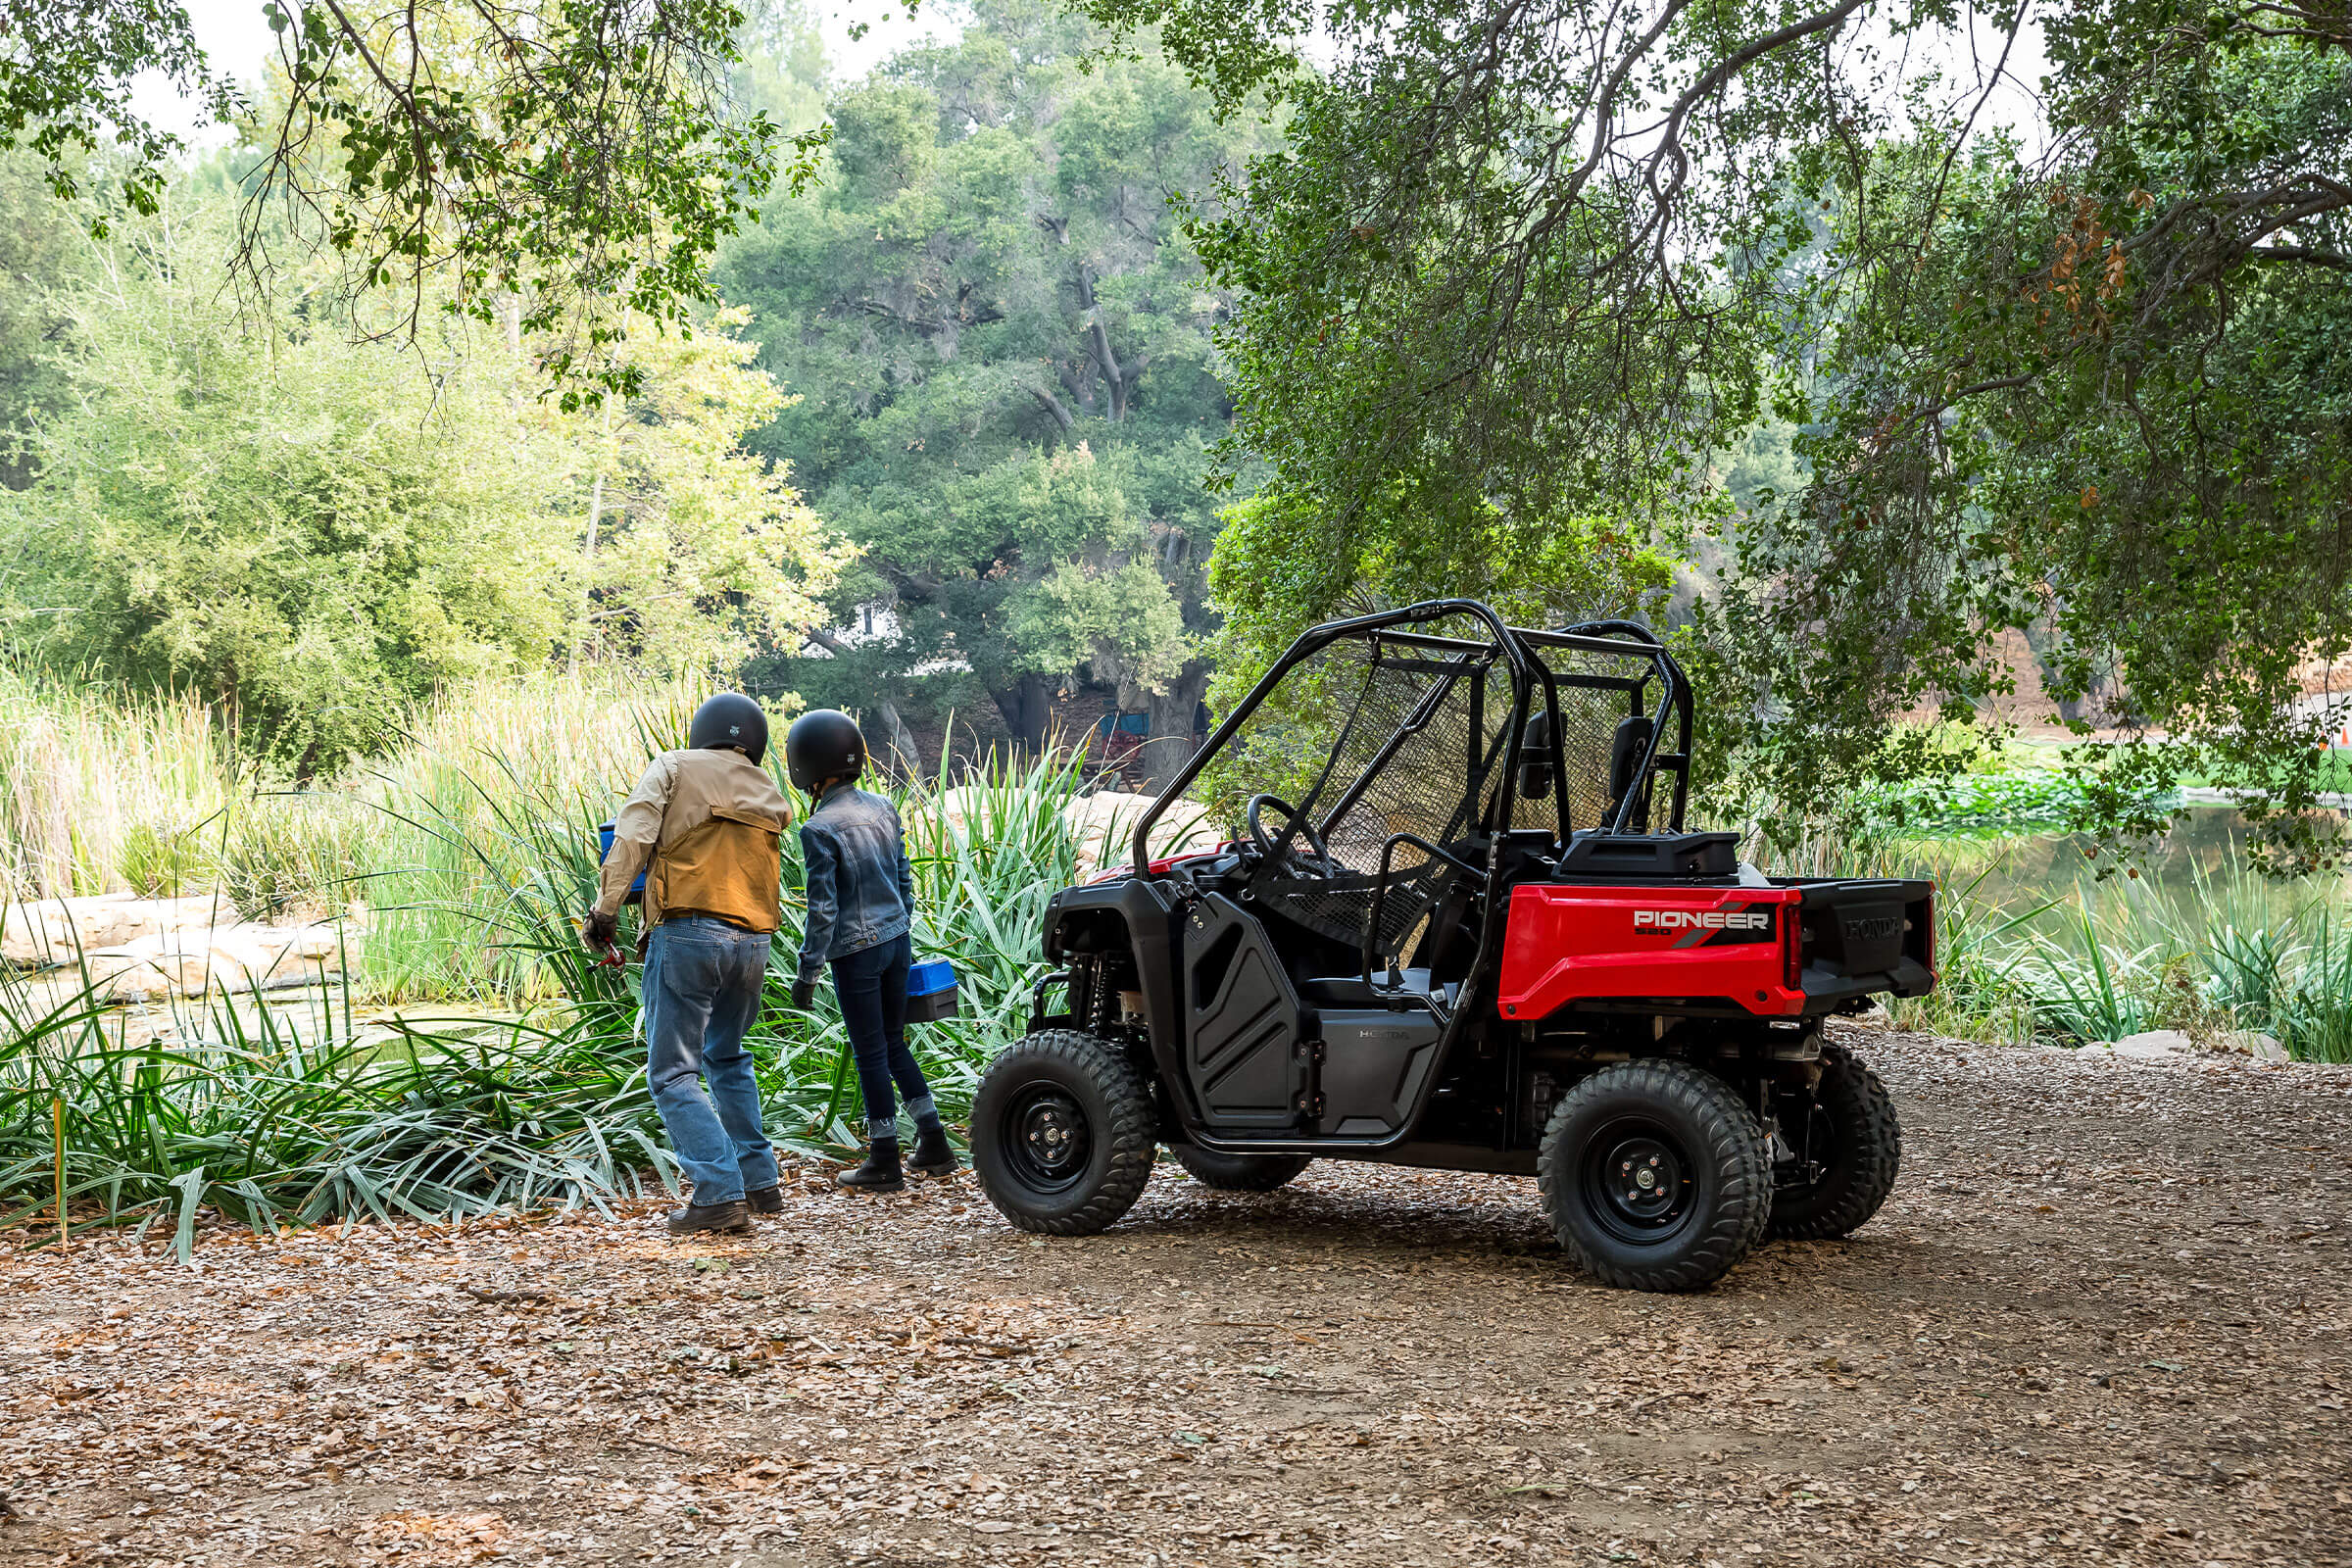 2021 Honda Pioneer 520 in Grass Valley, California - Photo 2